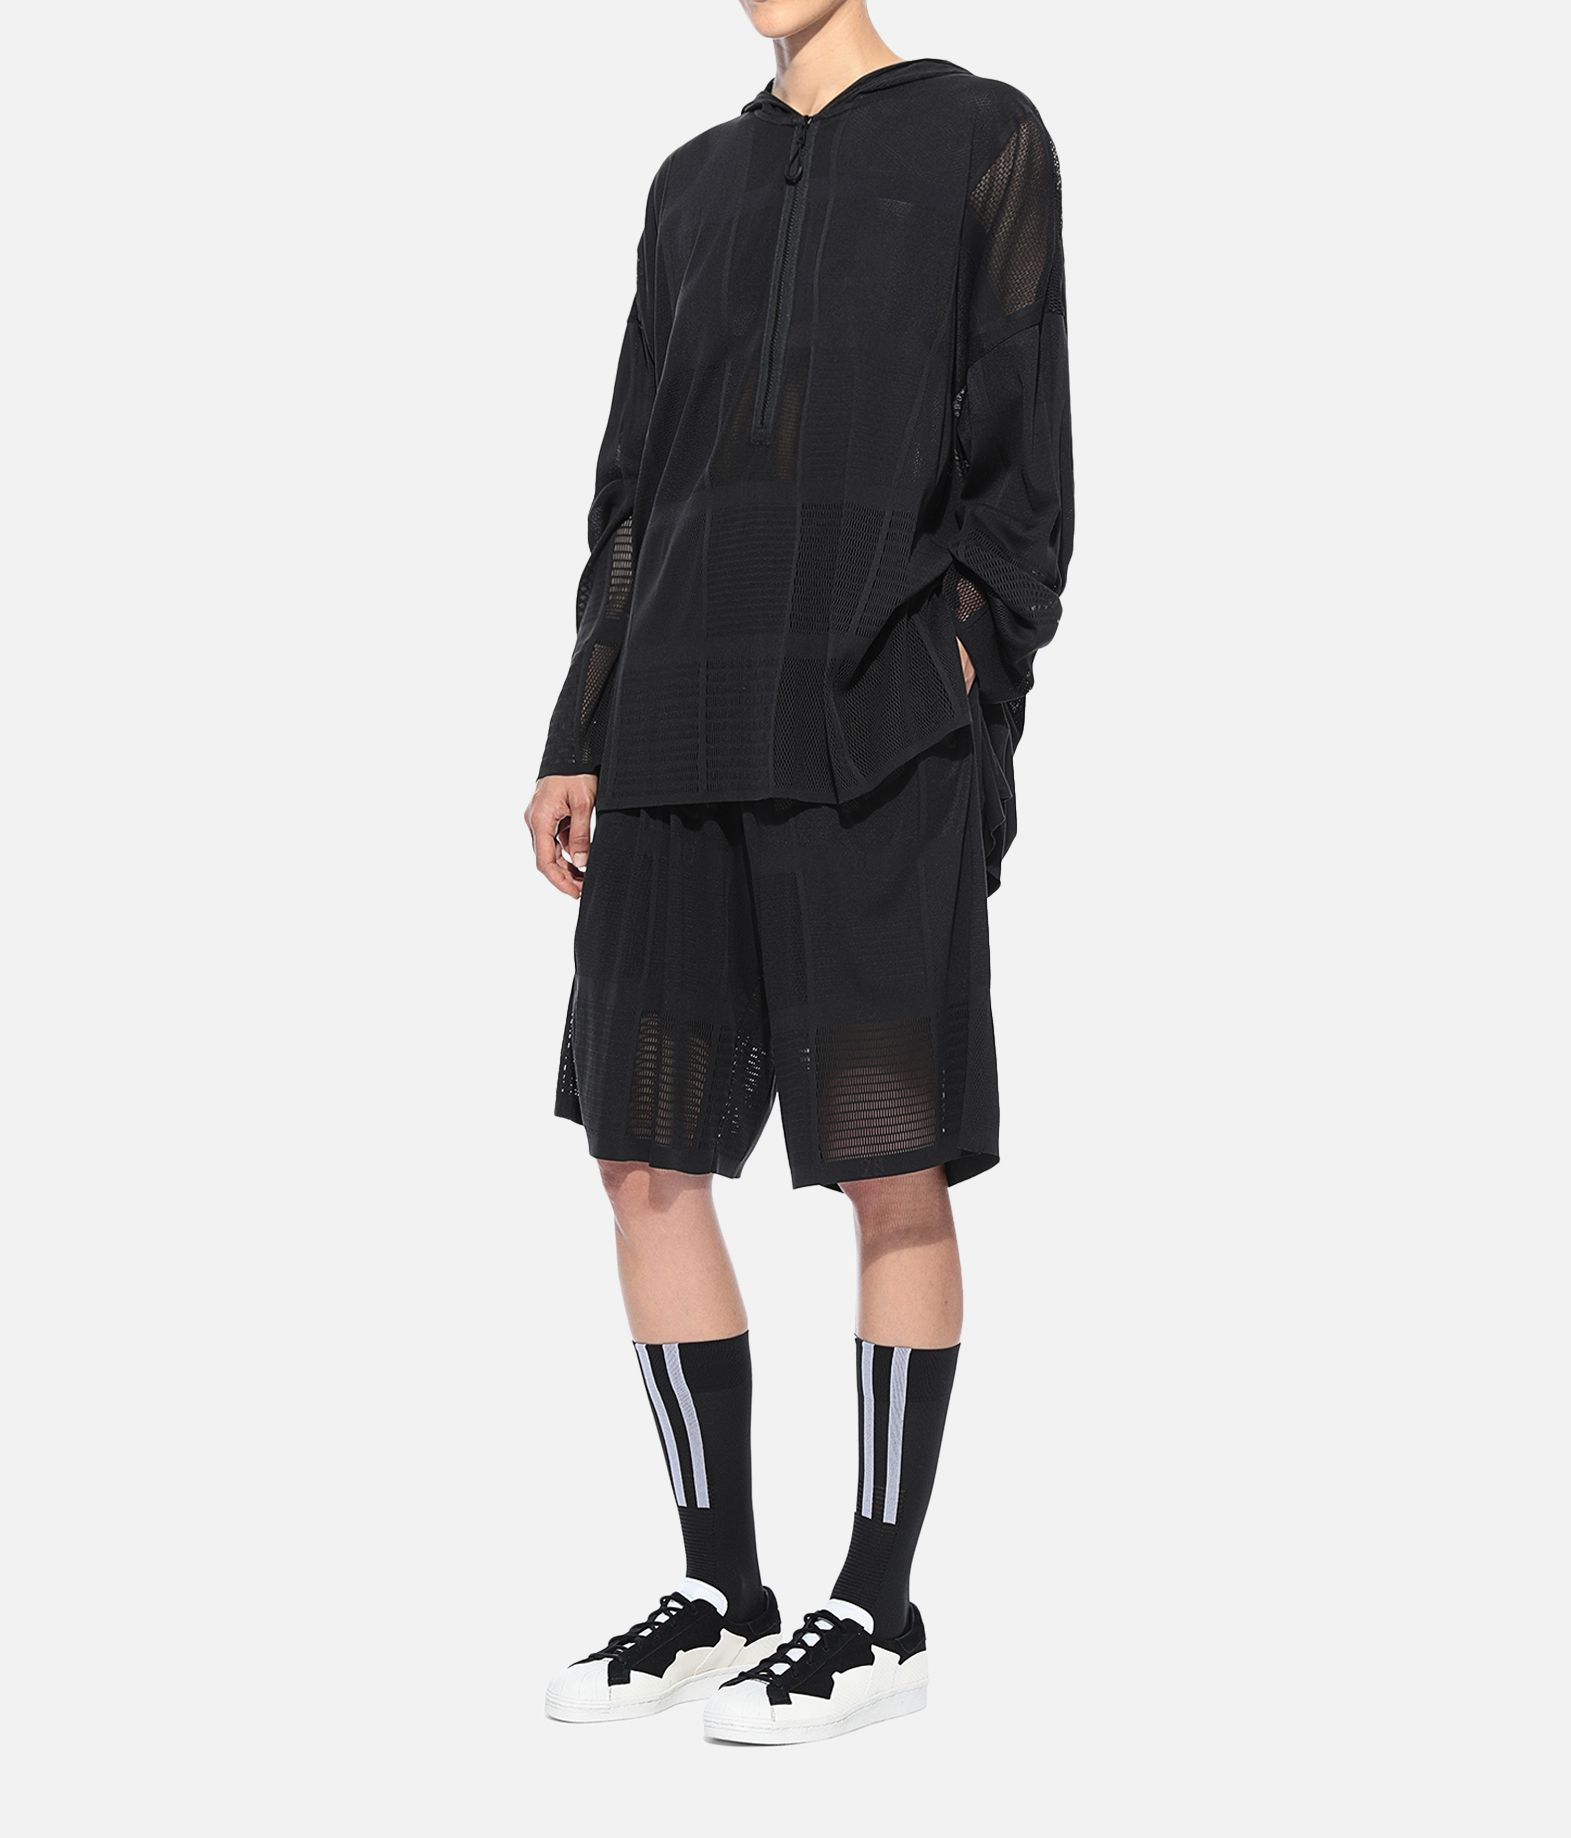 Y-3 Y-3 Patchwork Shorts Bermuda shorts Woman a